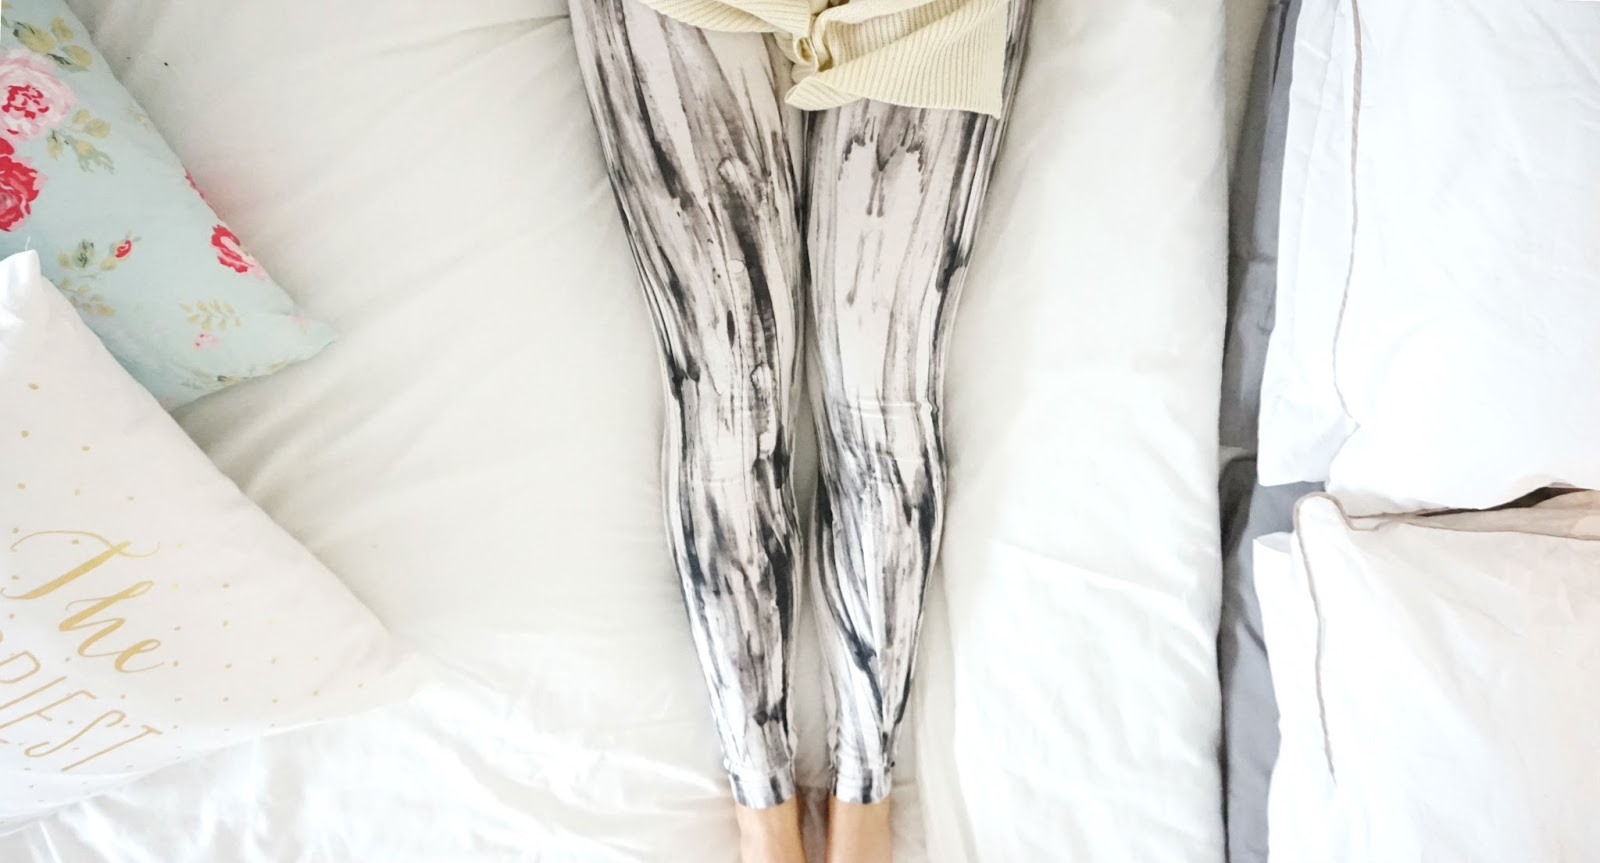 lifestyle day dreams and leggings calm relax chill how to get out of a blogging rut writers block tea cup takeaway nails fashion lifestyle